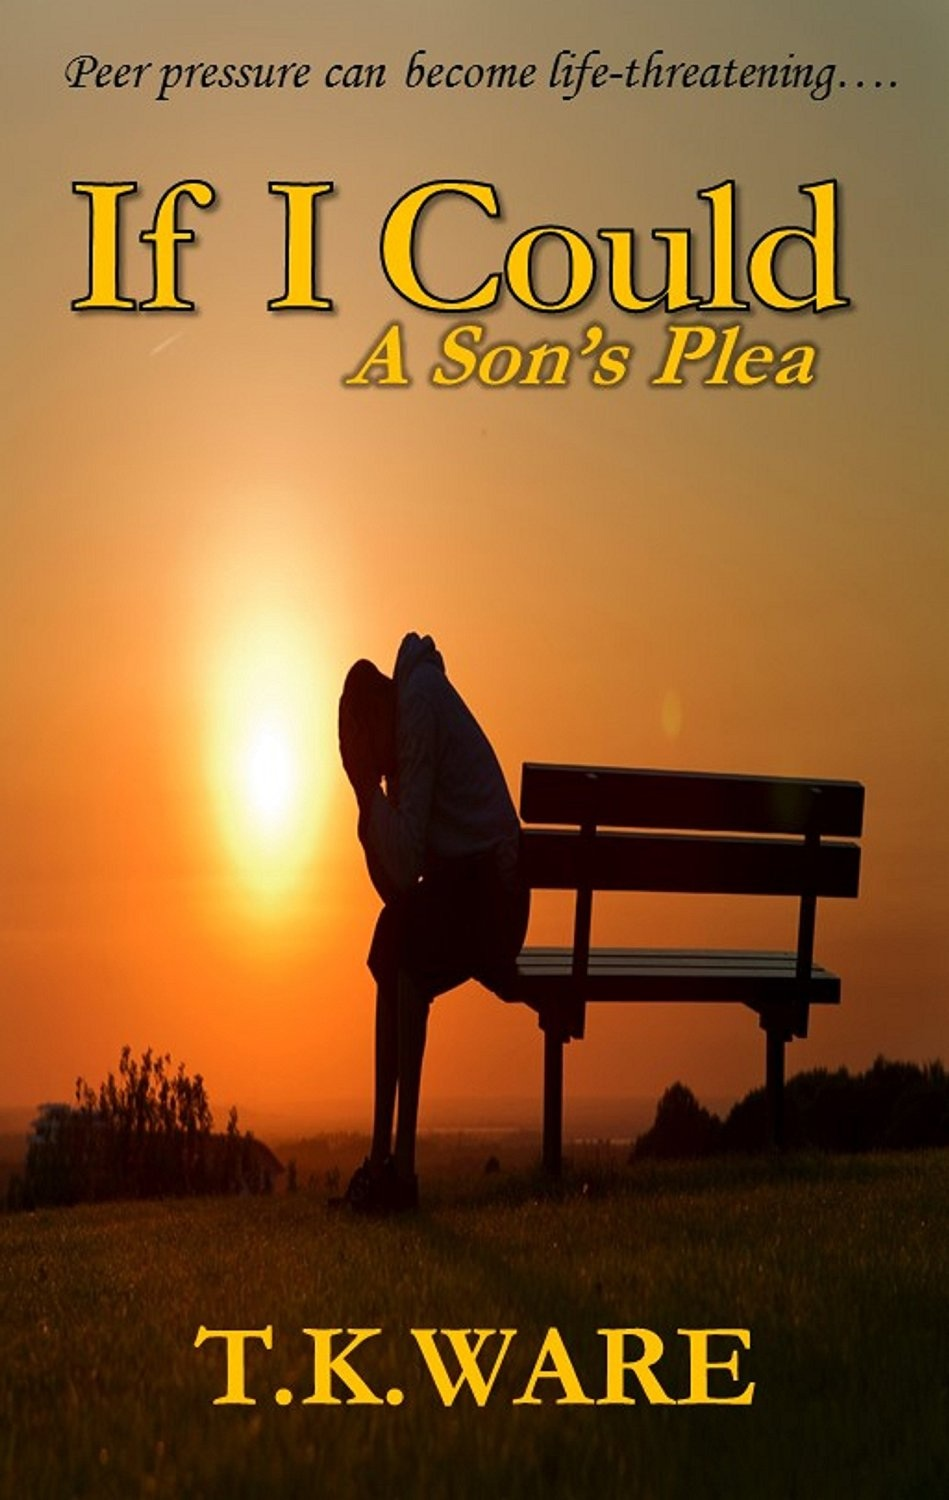 If I Could: A Son's Plea